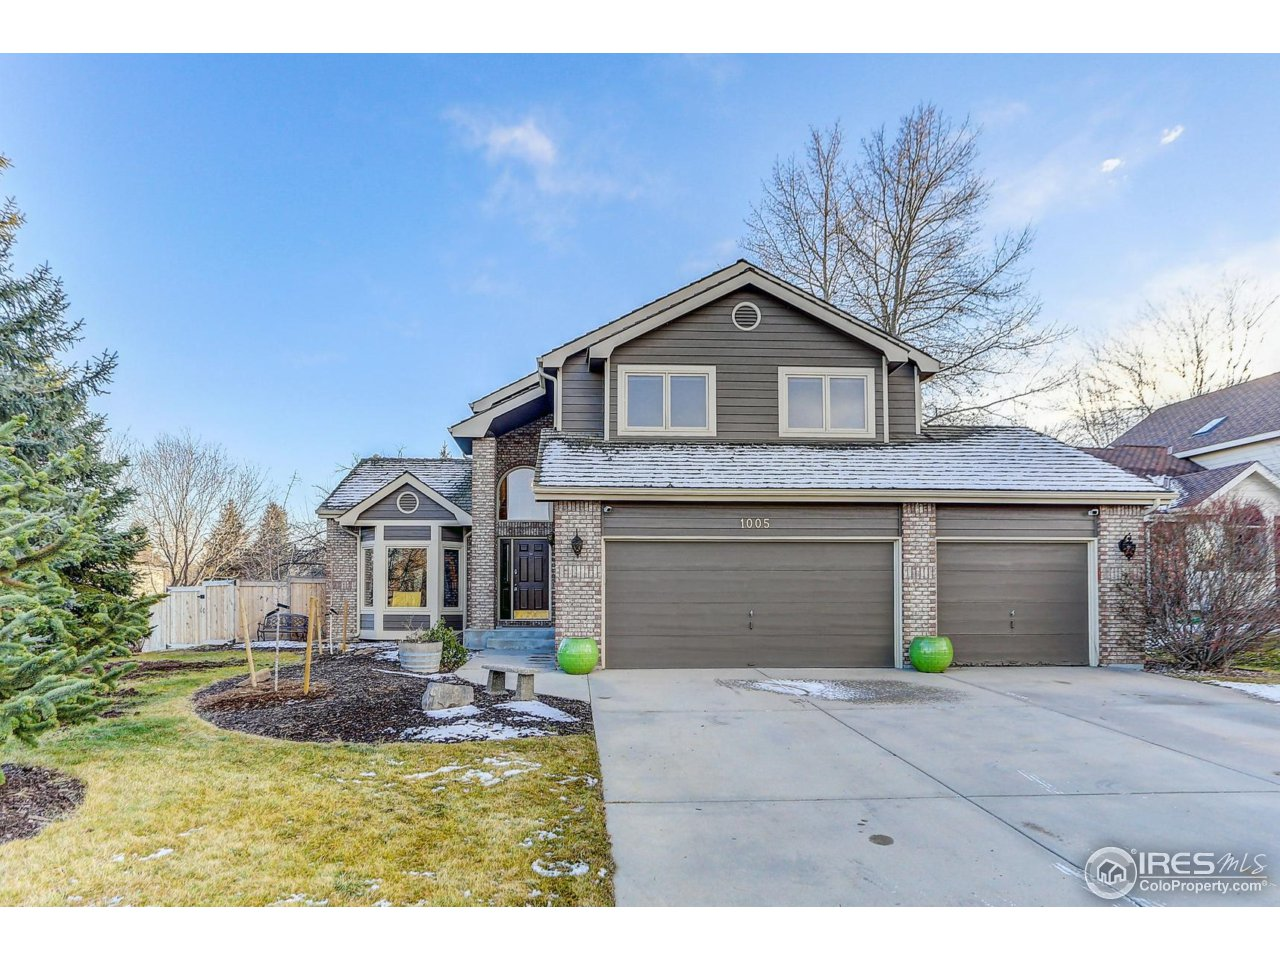 1005 Ashford Ct, Fort Collins CO 80526